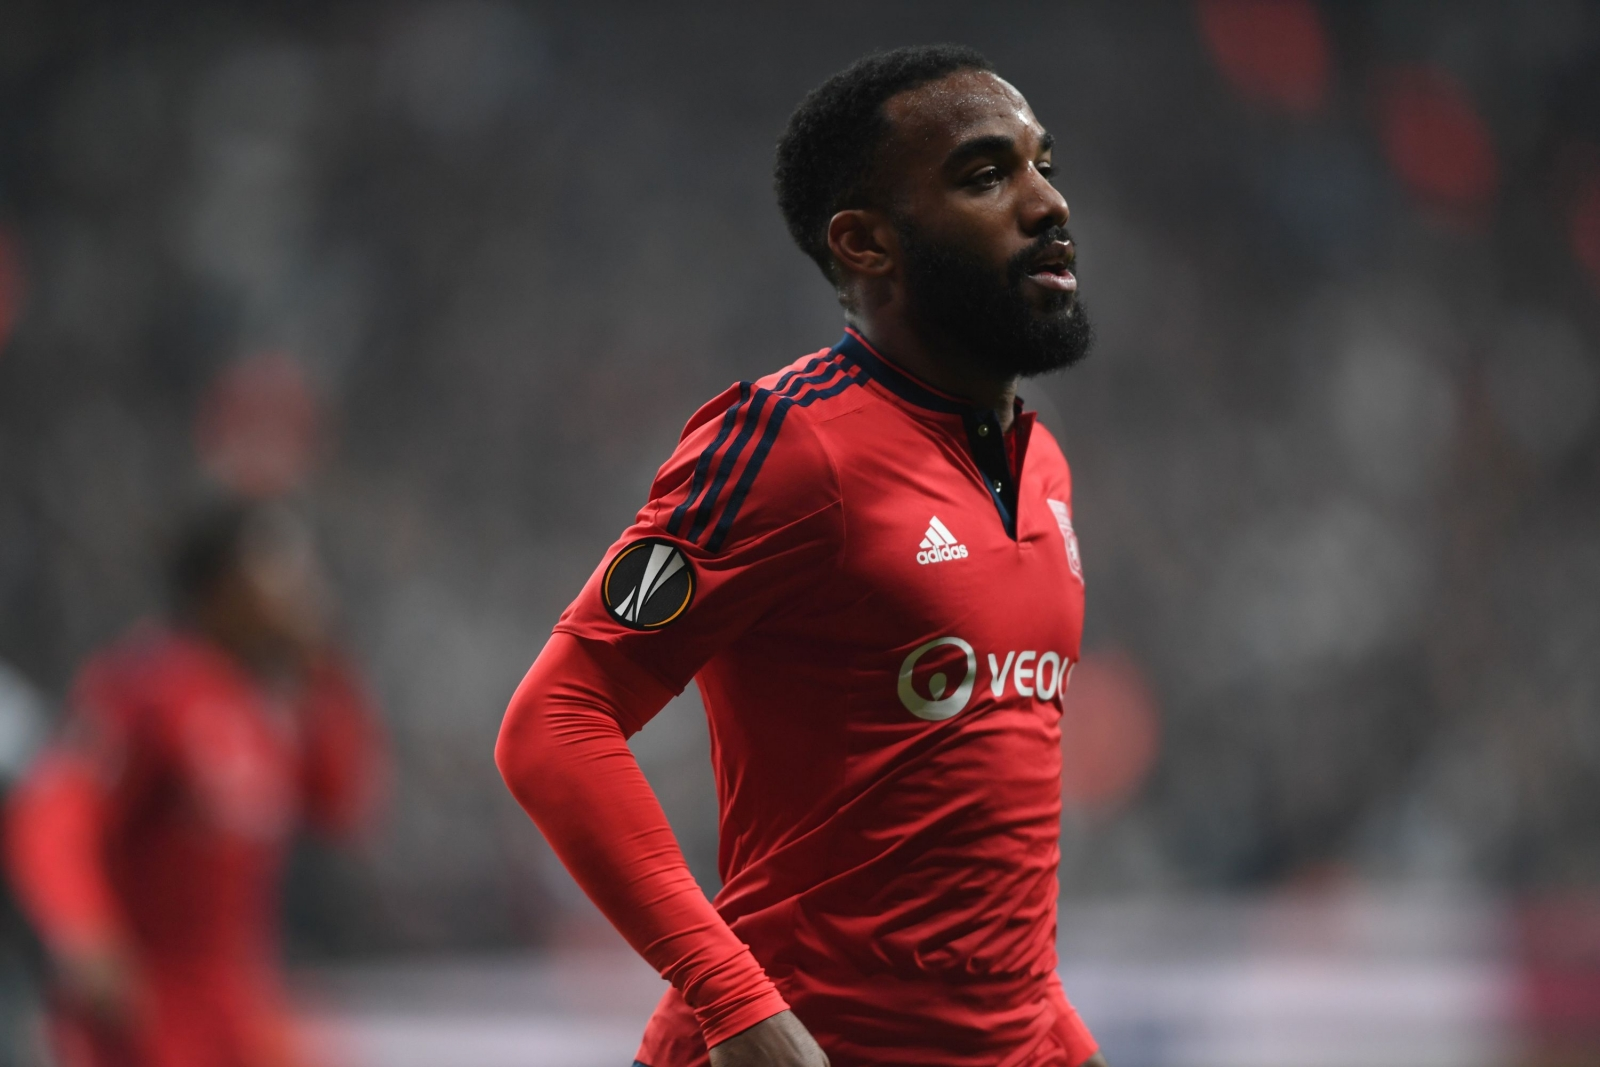 Arsenal bid for Lacazette, Lemar rejected